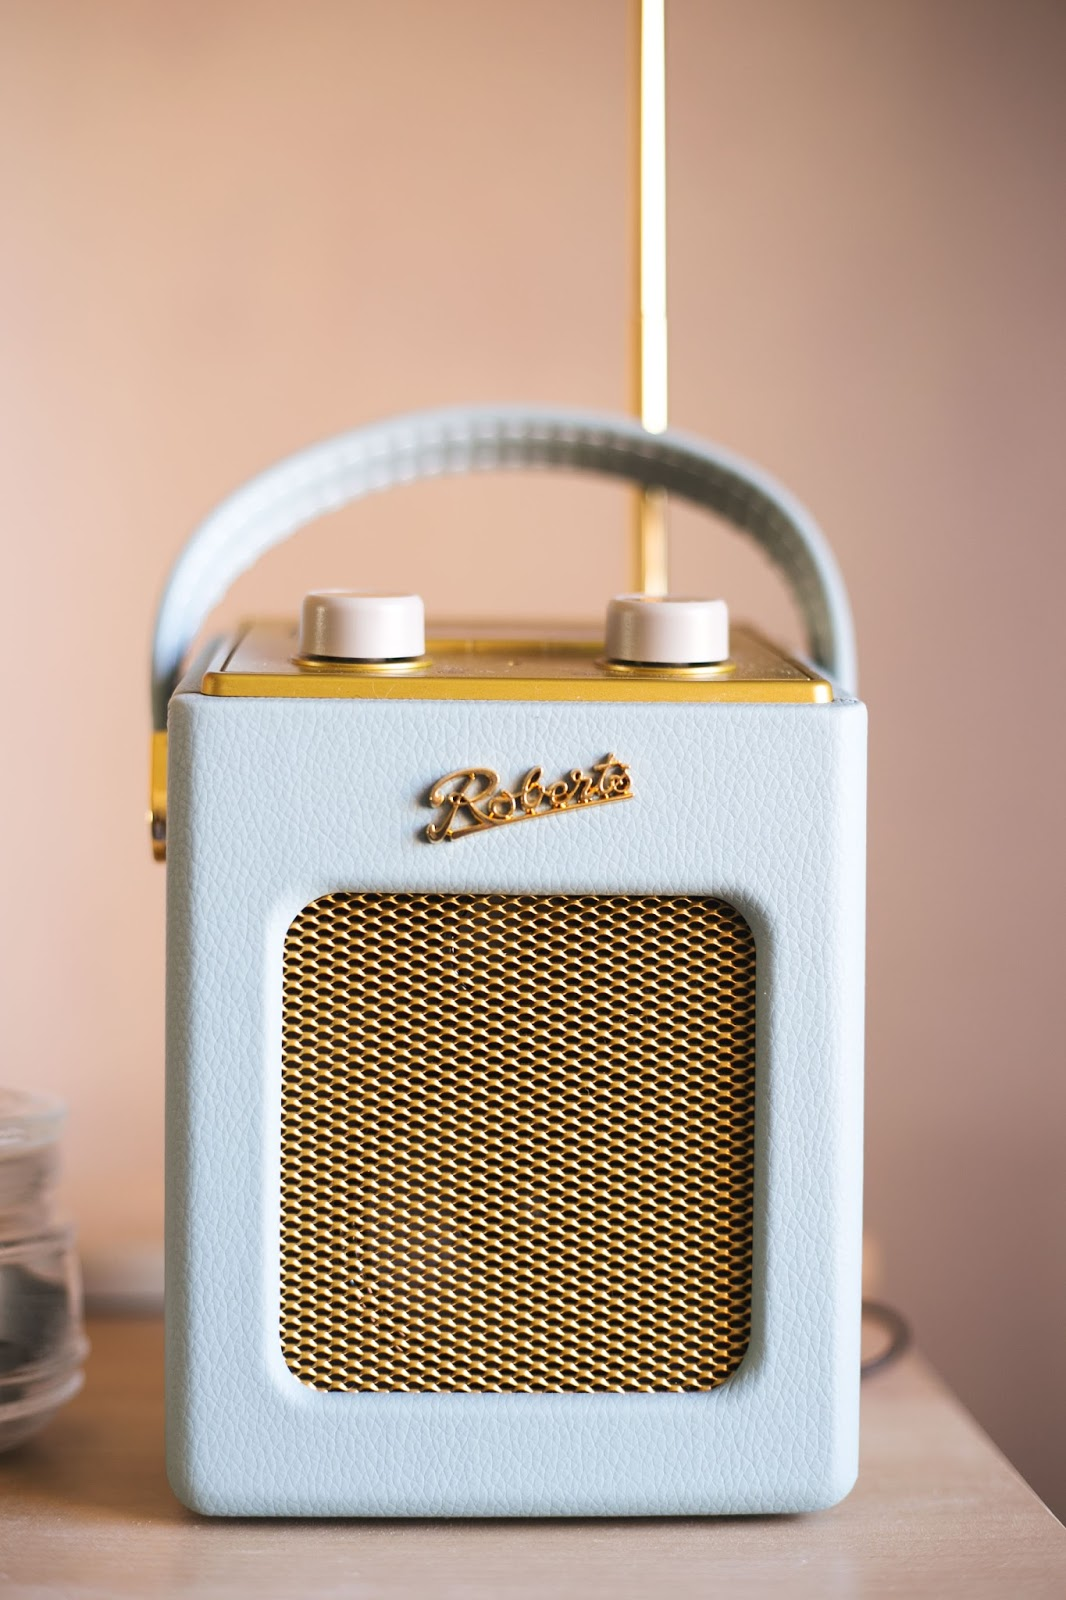 Roberts Revival Radio, Duck Egg Blue, Katie Writes, Interior Design Blogs,